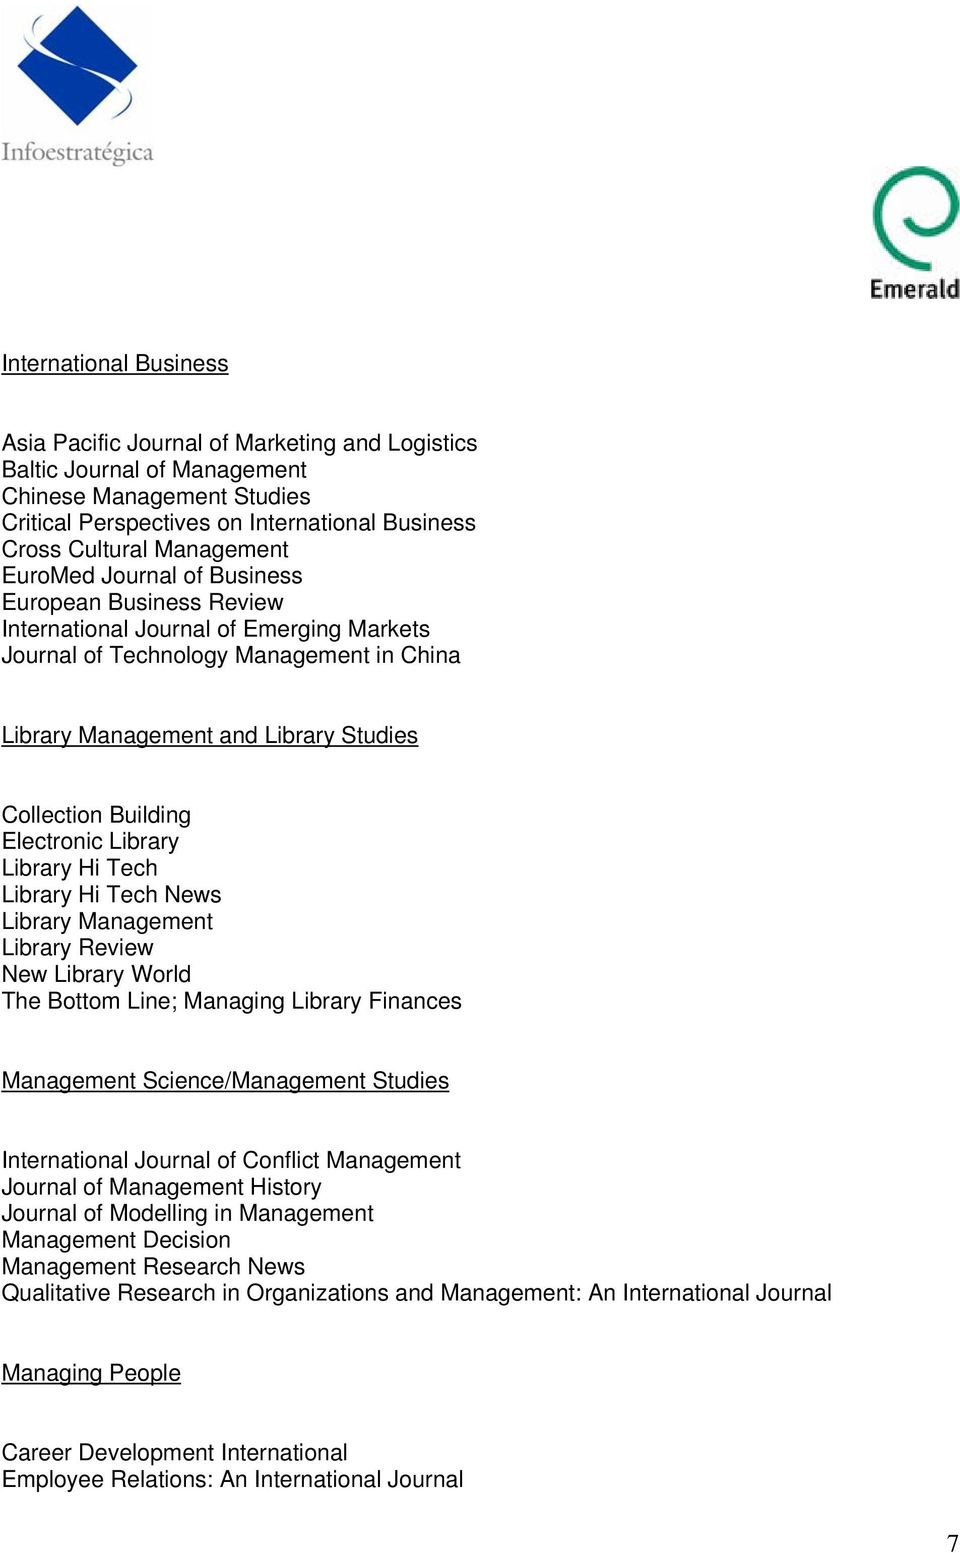 Library Hi Tech Library Hi Tech News Library Management Library Review New Library Wrld The Bttm Line; Managing Library Finances Management Science/Management Studies Internatinal Jurnal f Cnflict